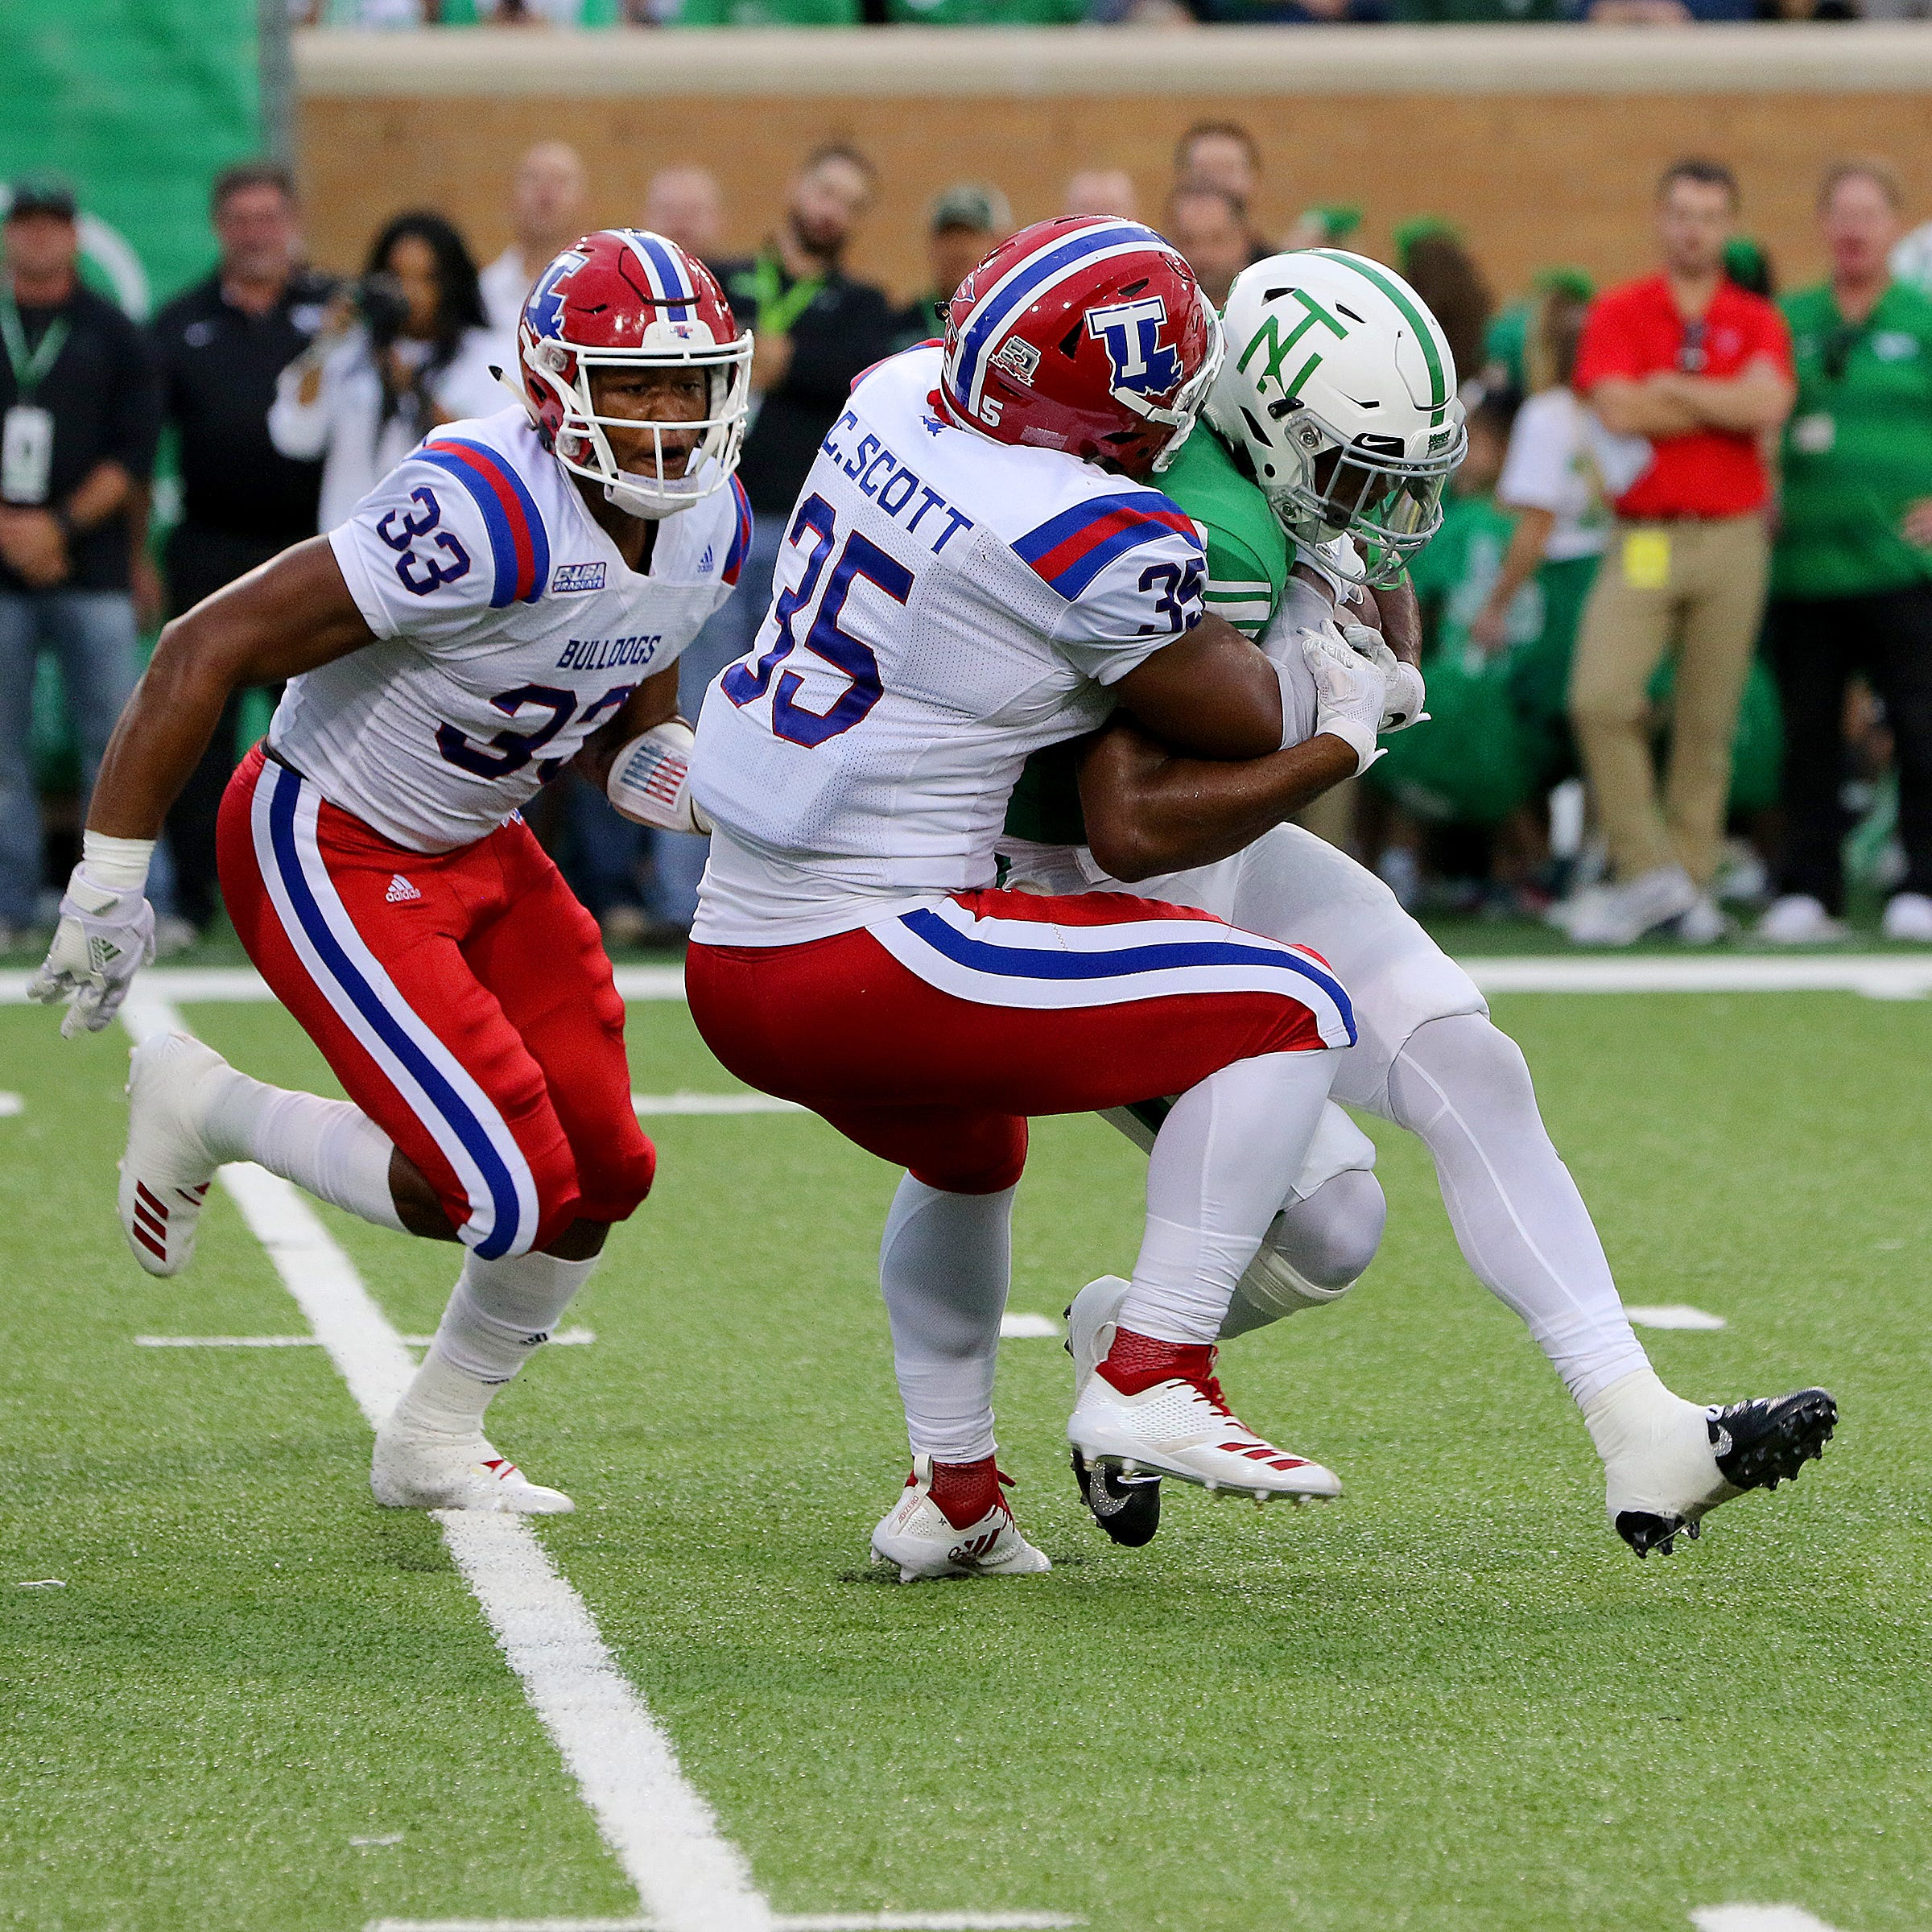 LA Tech's 'Thumper': How Collin Scott emerged to fill big role, lead in tackles